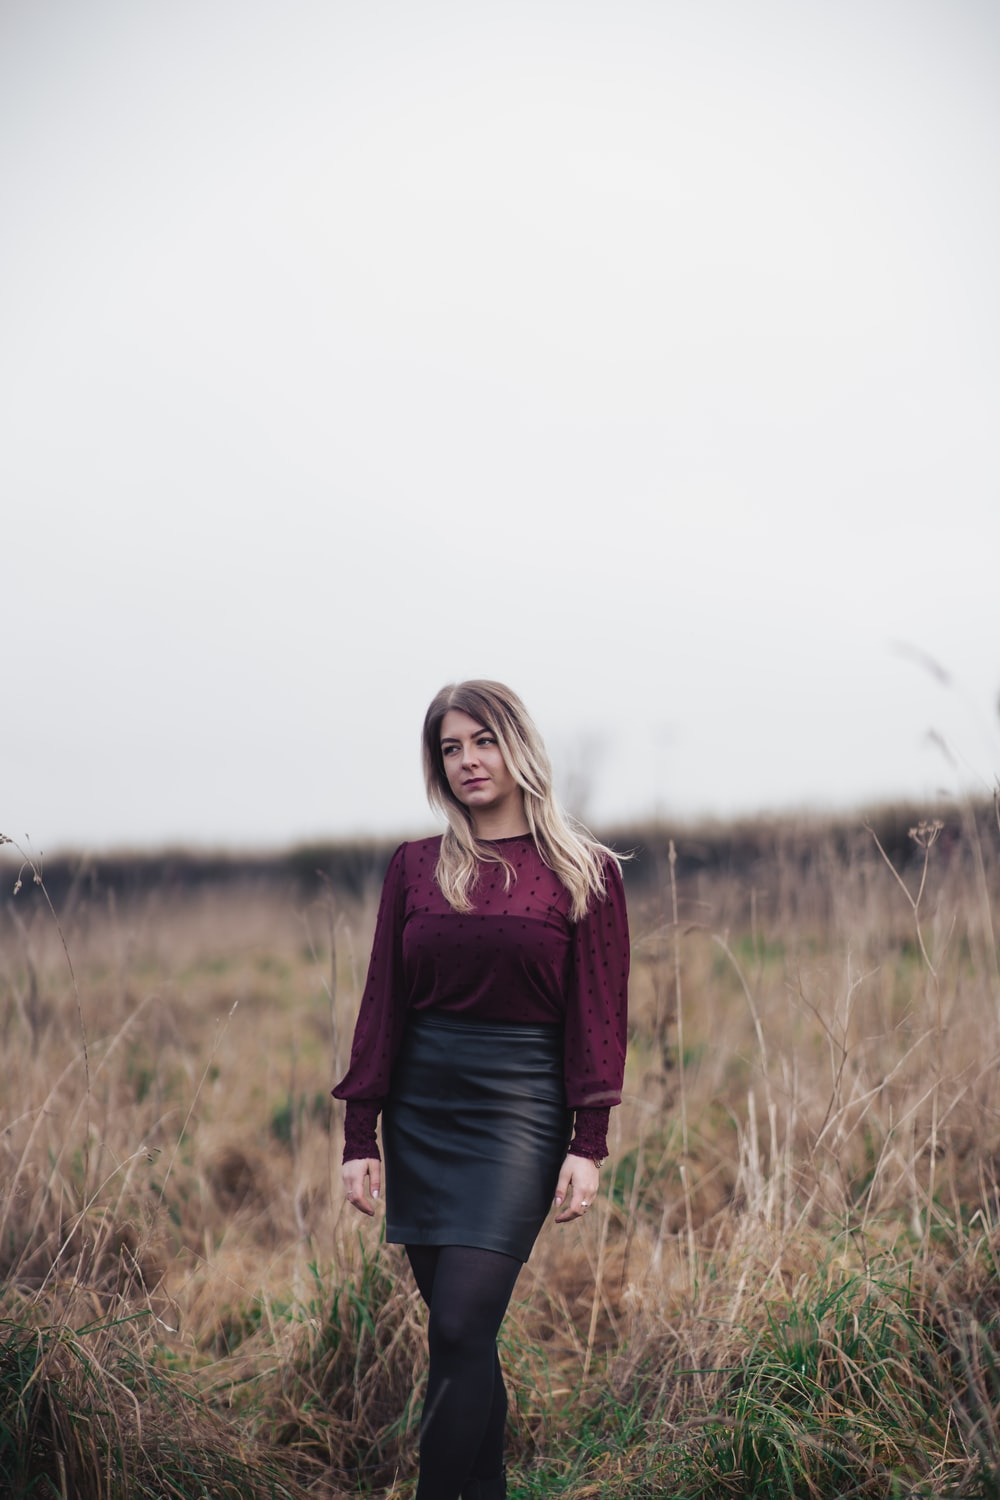 woman in red long-sleeved top and black skirt standing outdoors